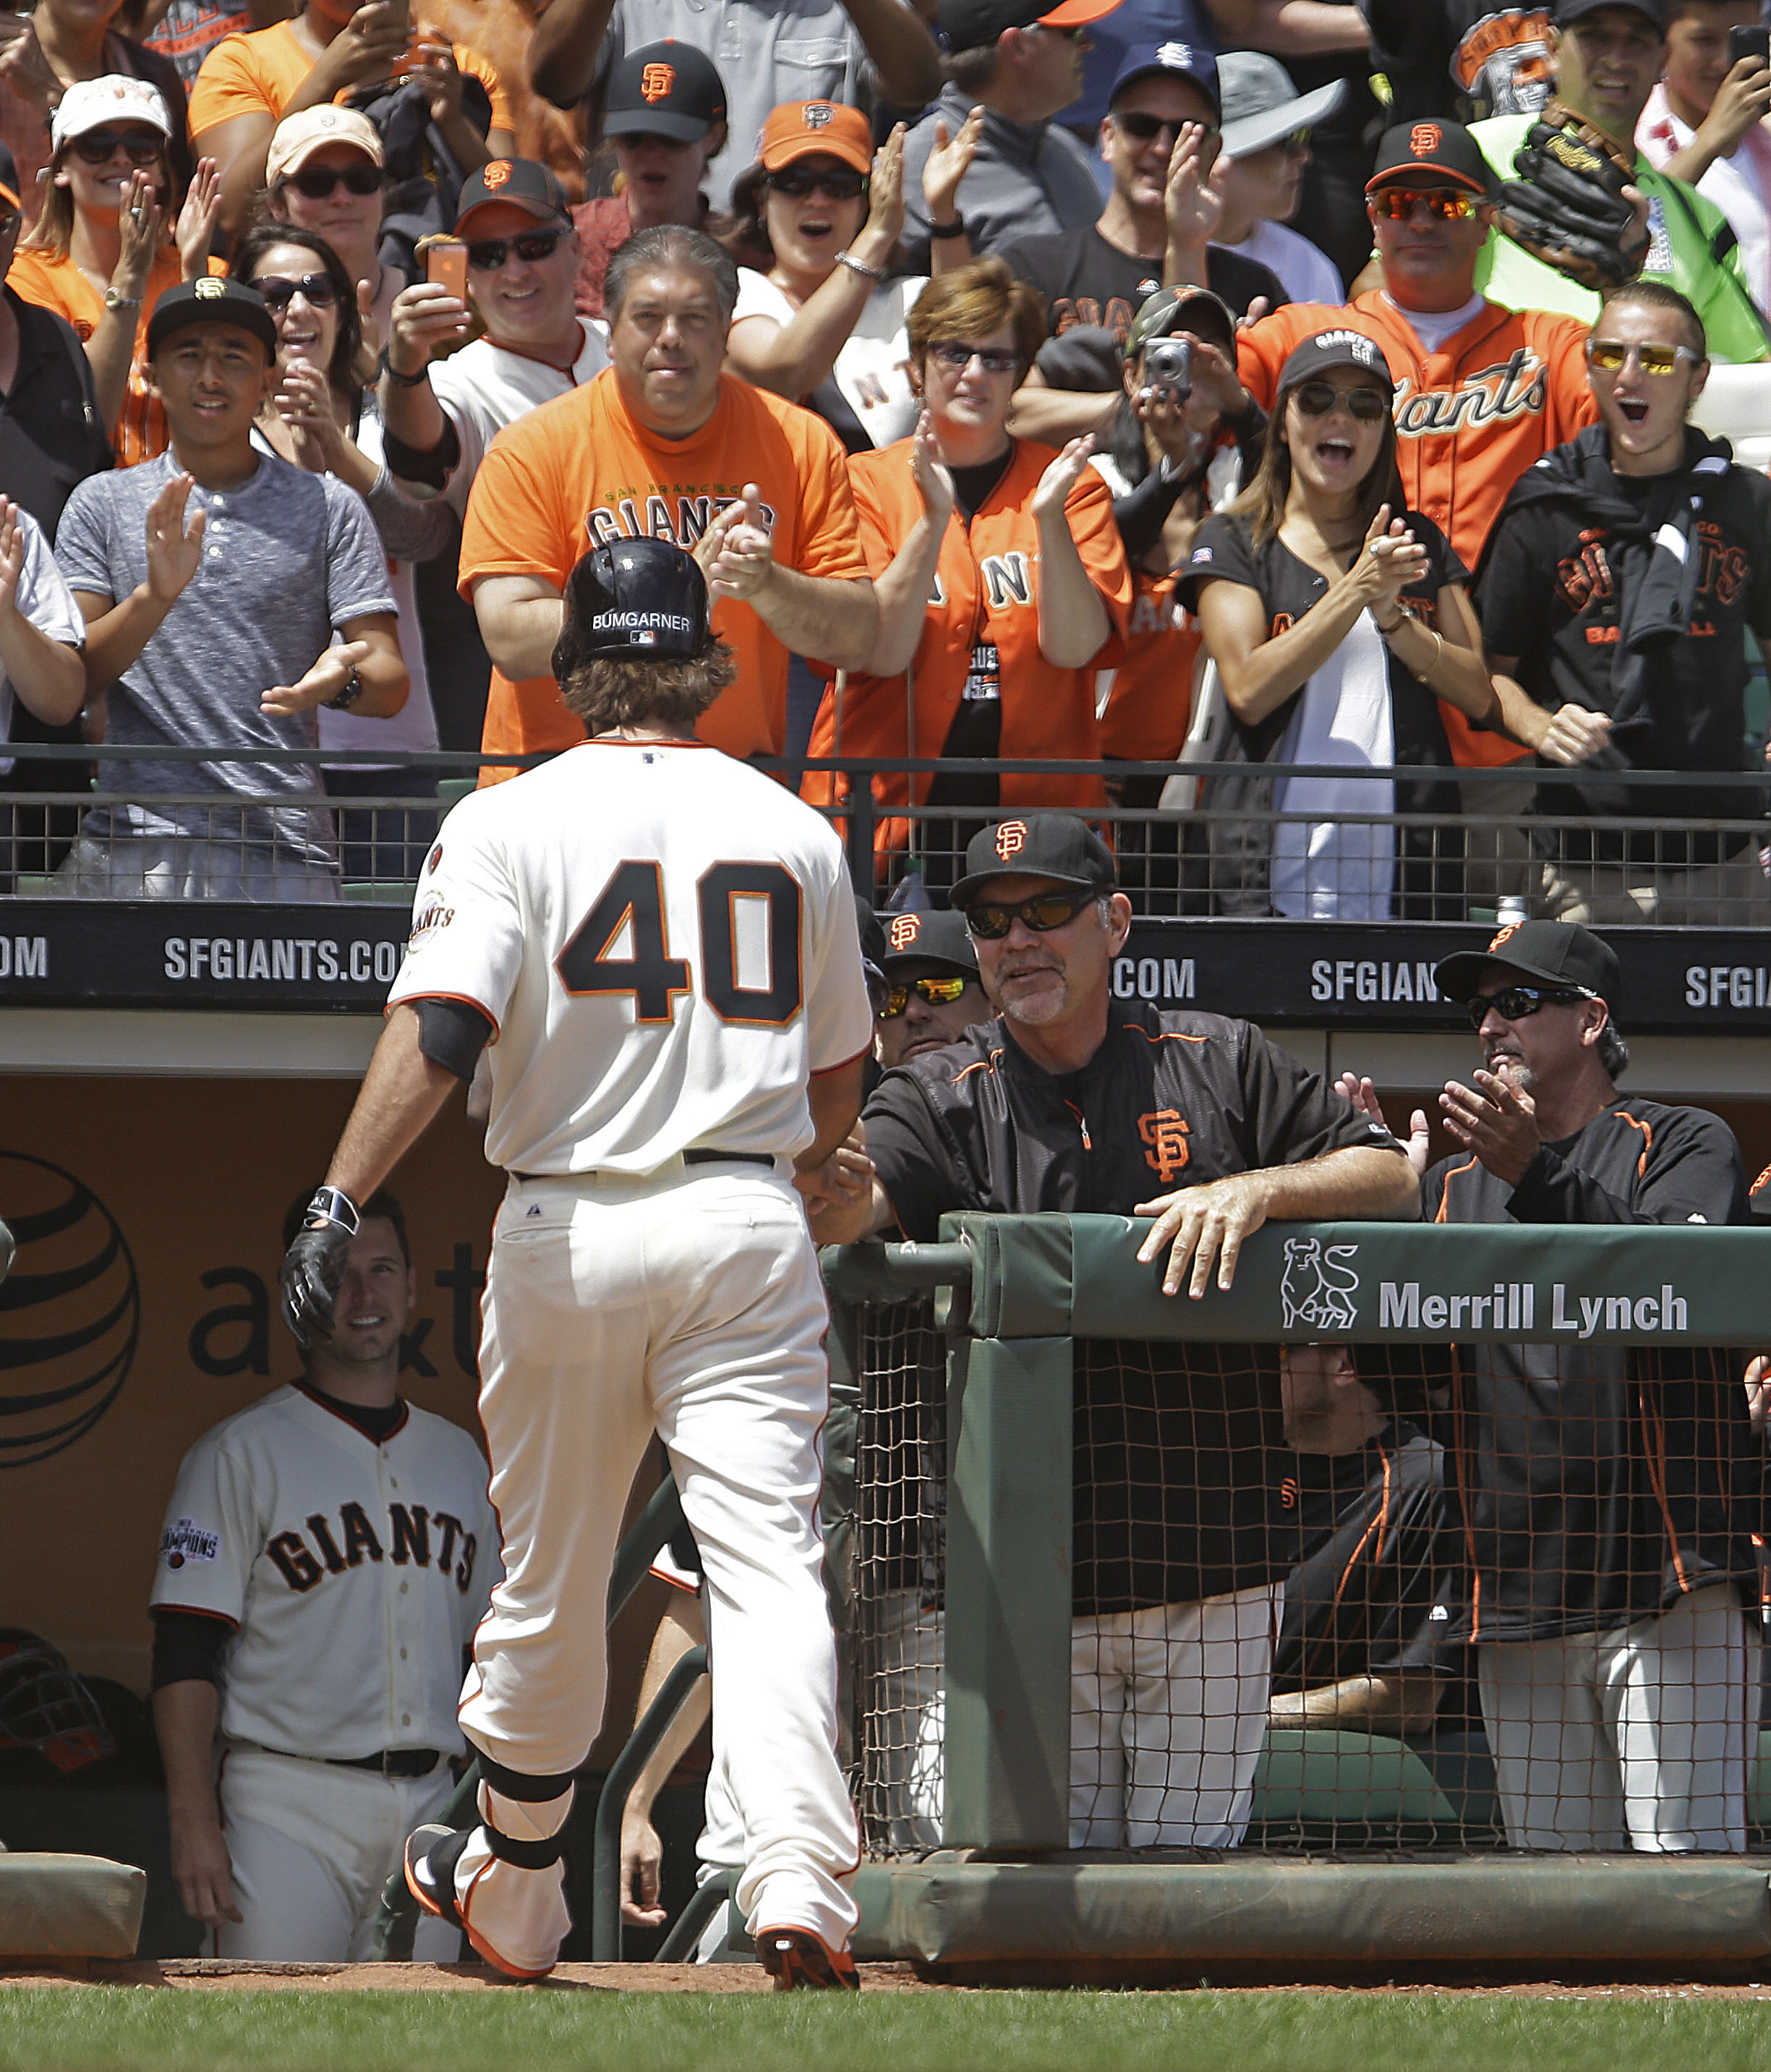 San Francisco Giants pitcher Madison Bumgarner (40) is congratulated by manageer Bruce Bochy after hitting a home run off Oakland Athletics' Chris Bassitt in the third inning of a baseball game Saturday, July 25, 2015, in San Francisco. (AP Photo/Ben Marg